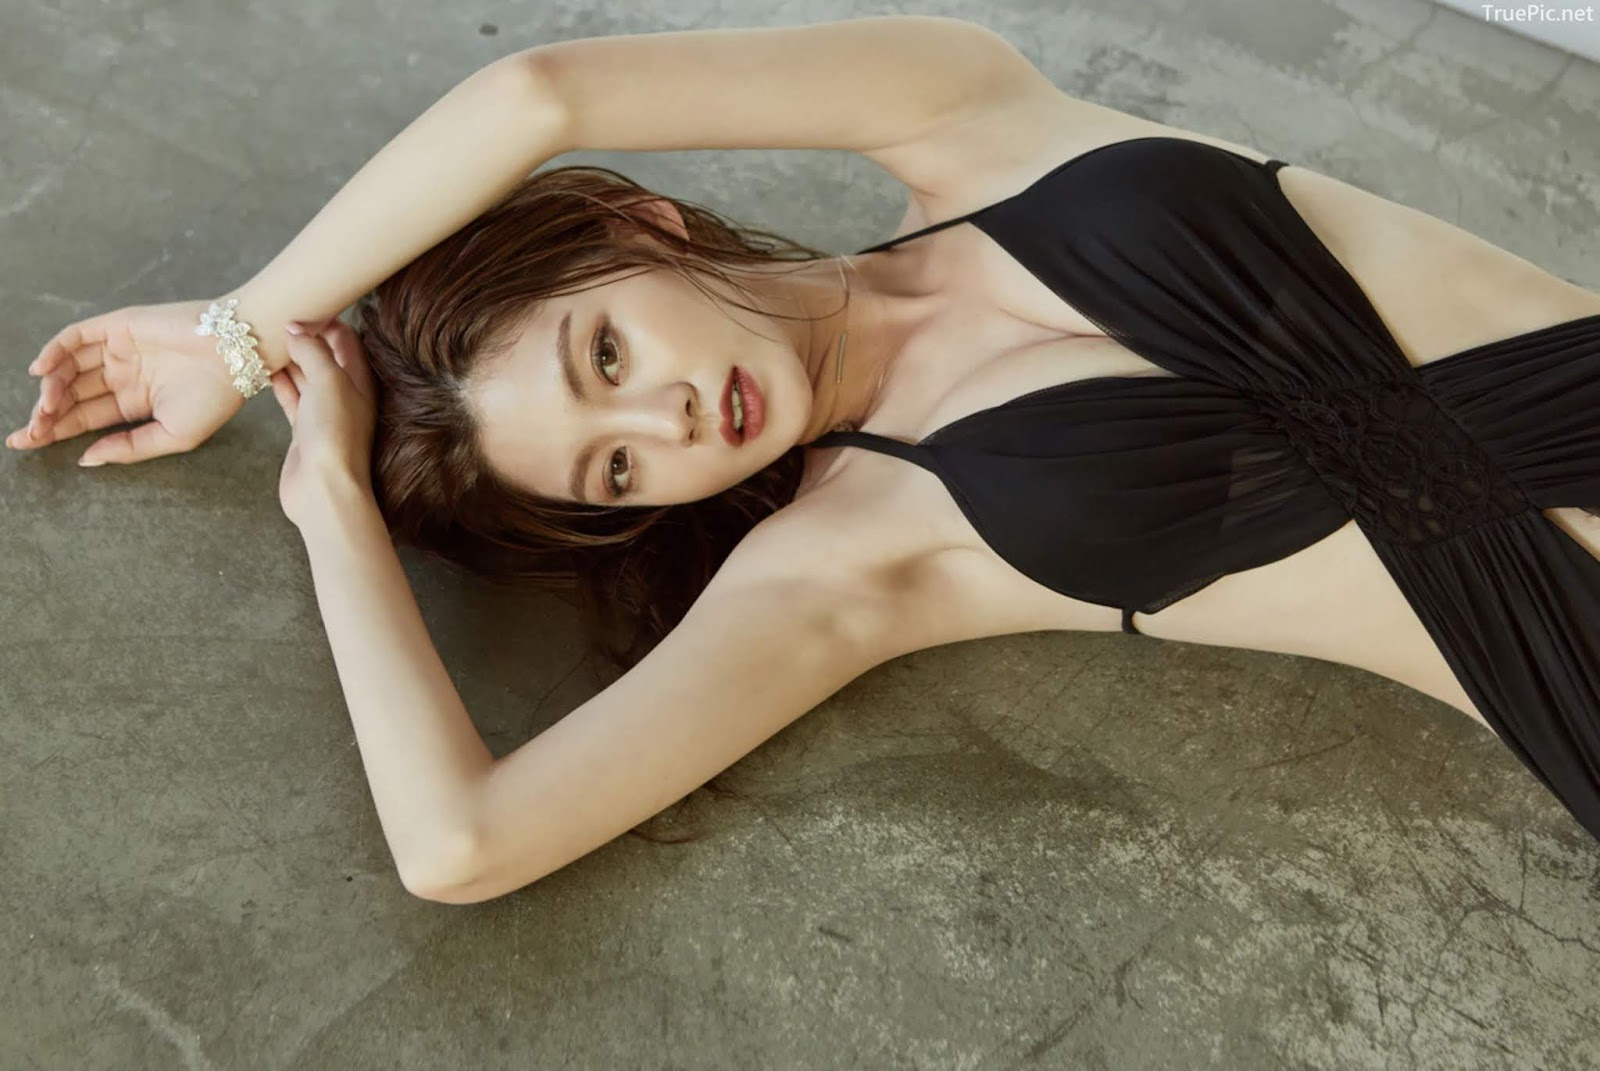 Korean model and fashion - Lee Chae Eun - Monokini for summer vacation - Picture 10